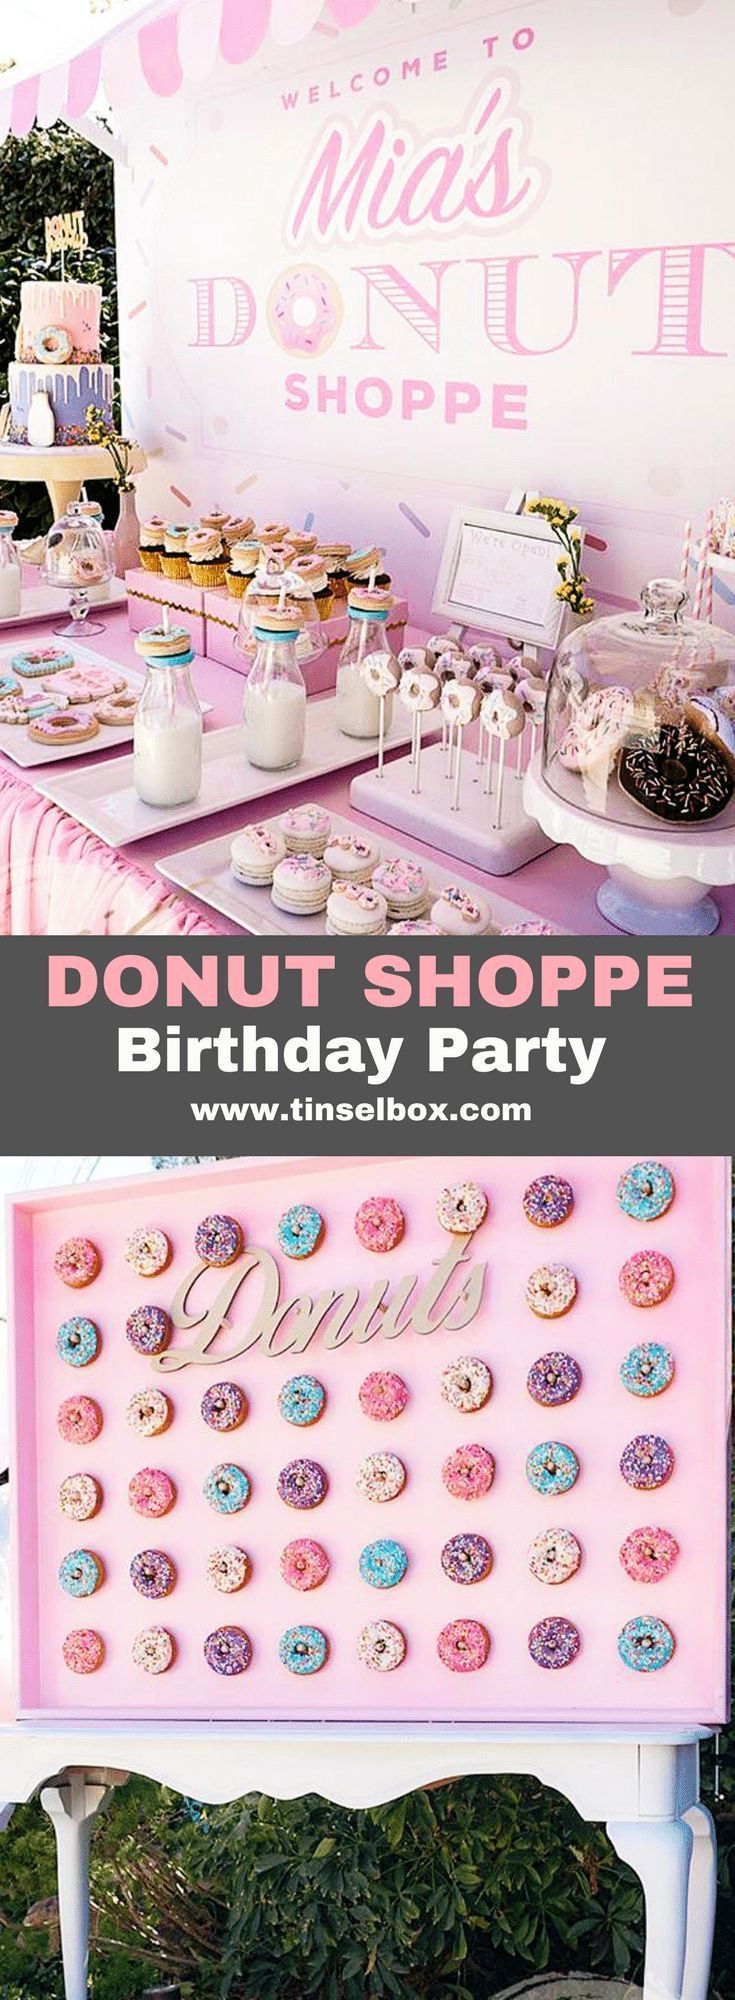 This adorable donut birthday party is filled with sprinkled treats. Find so many great inspirations from desserts to decorations. Including cake, cookies and Rice Krispys shaped like donuts. #donut #kidsparty via @tinselbox_